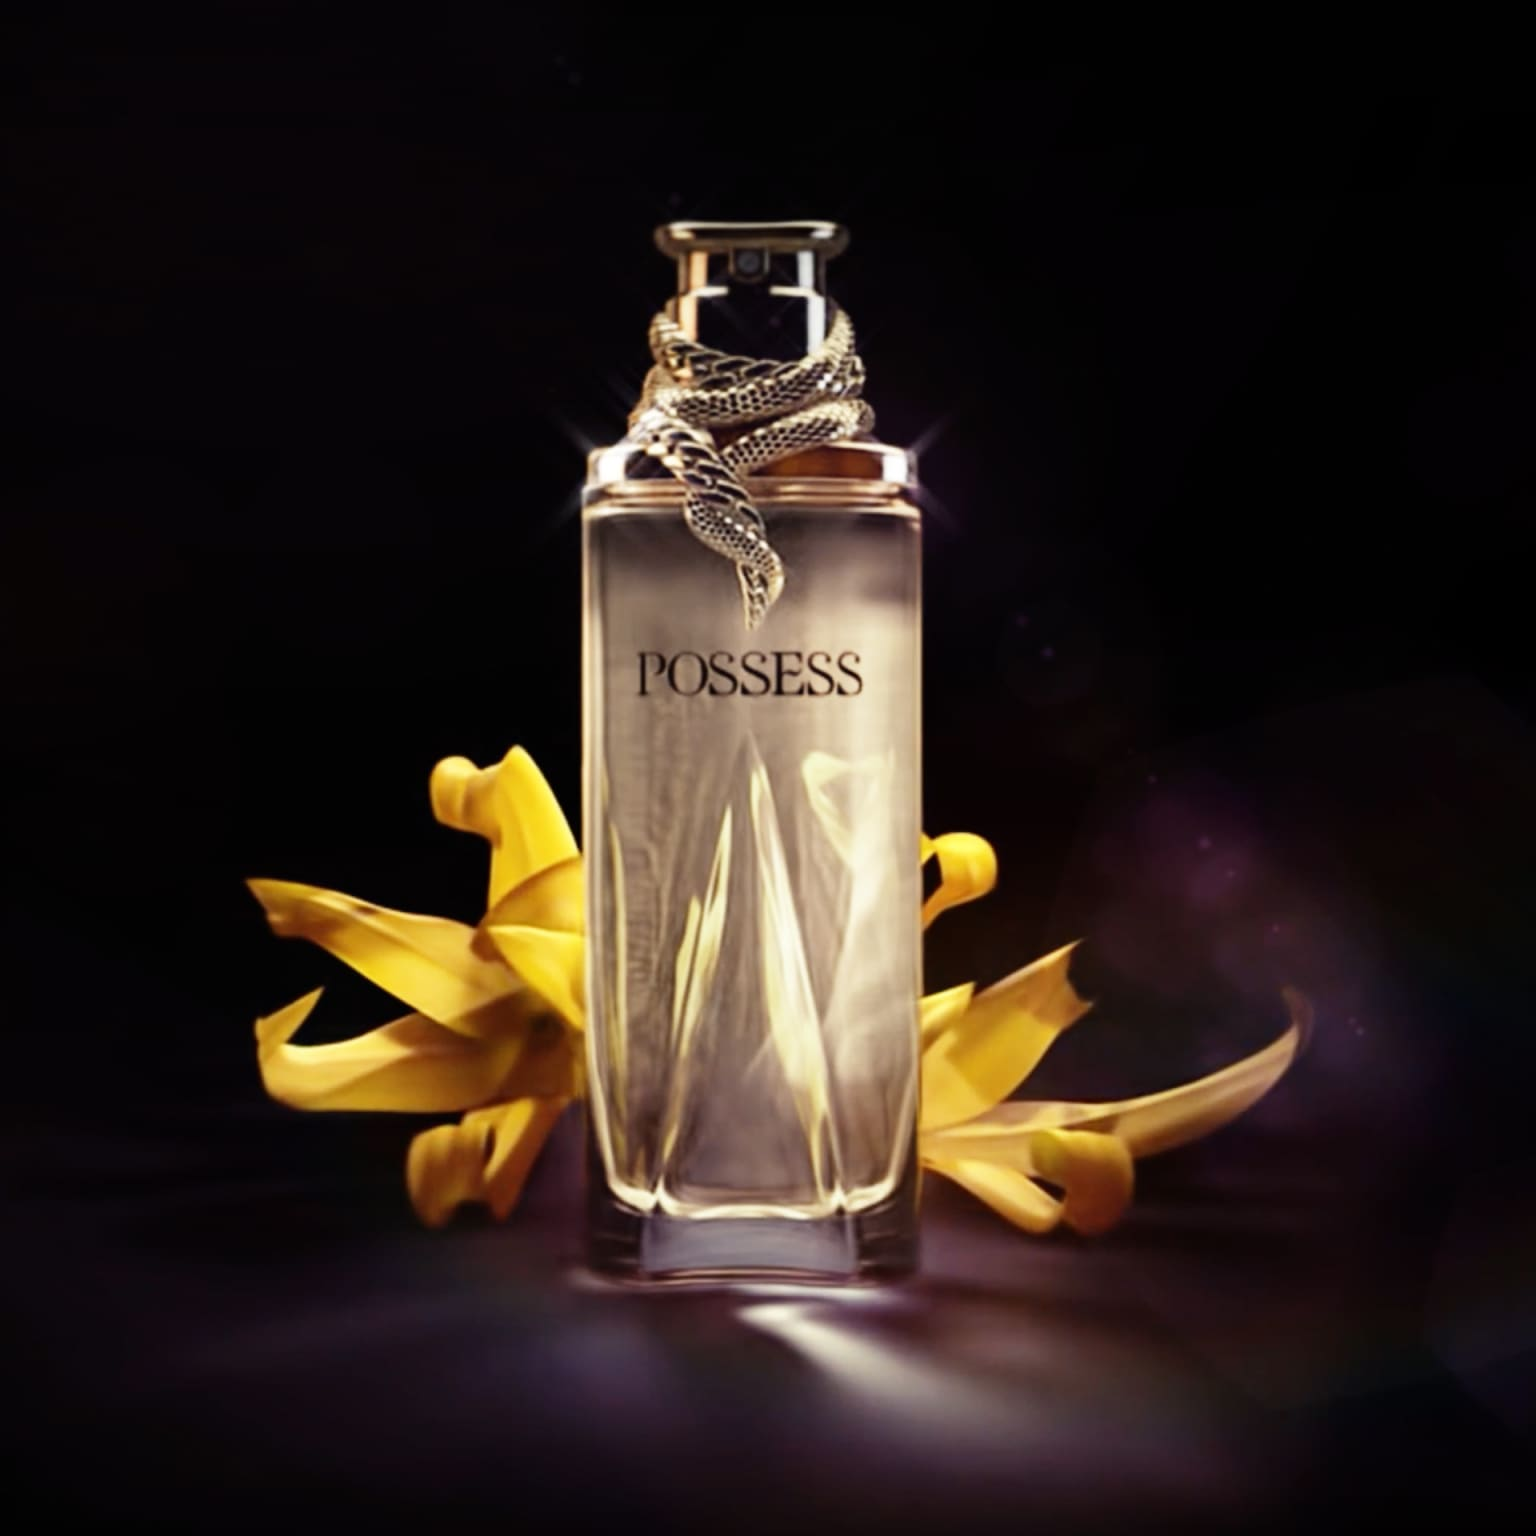 Perfume Commercial for Oriflame's Possess